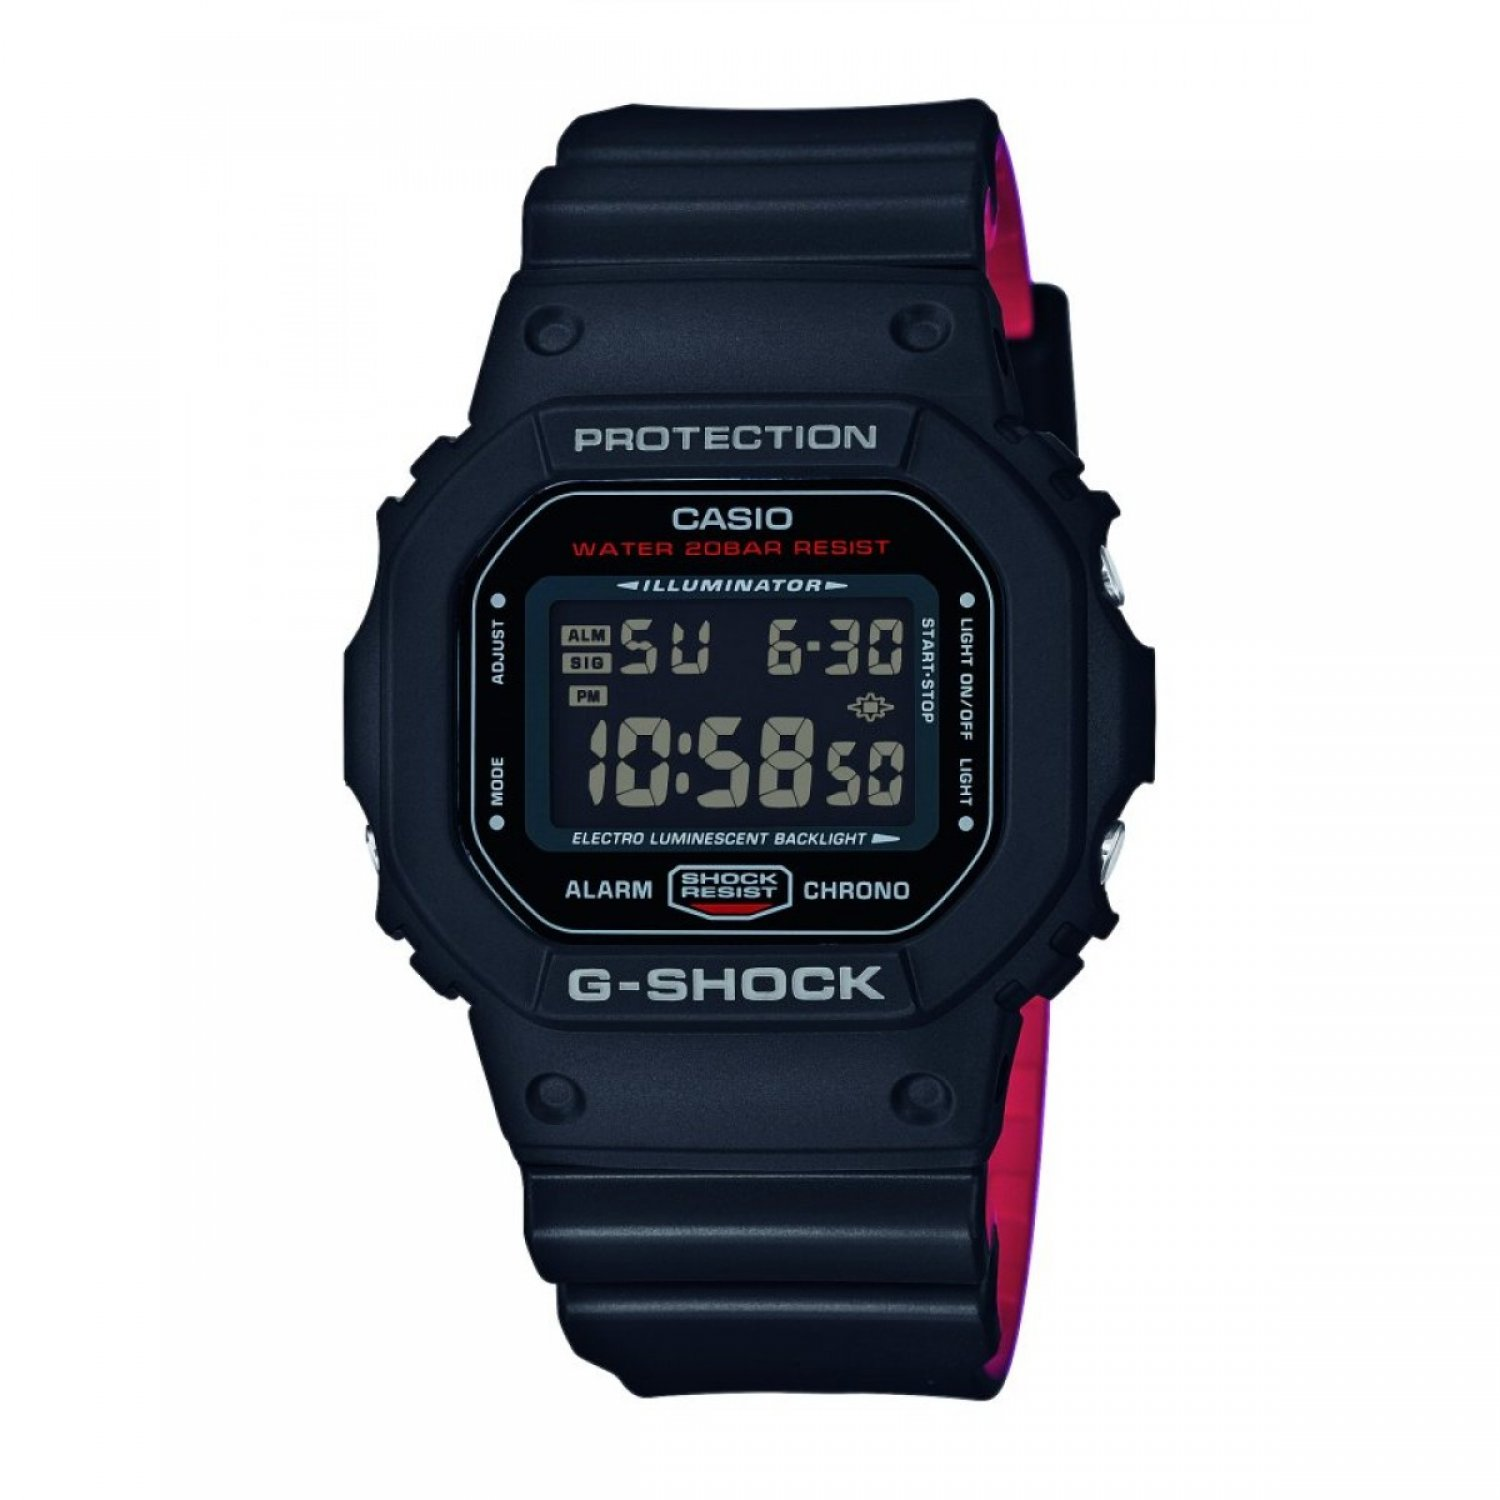 CASIO G-SHOCK ORIGINAL DW-5600HR-1ER Armbanduhr